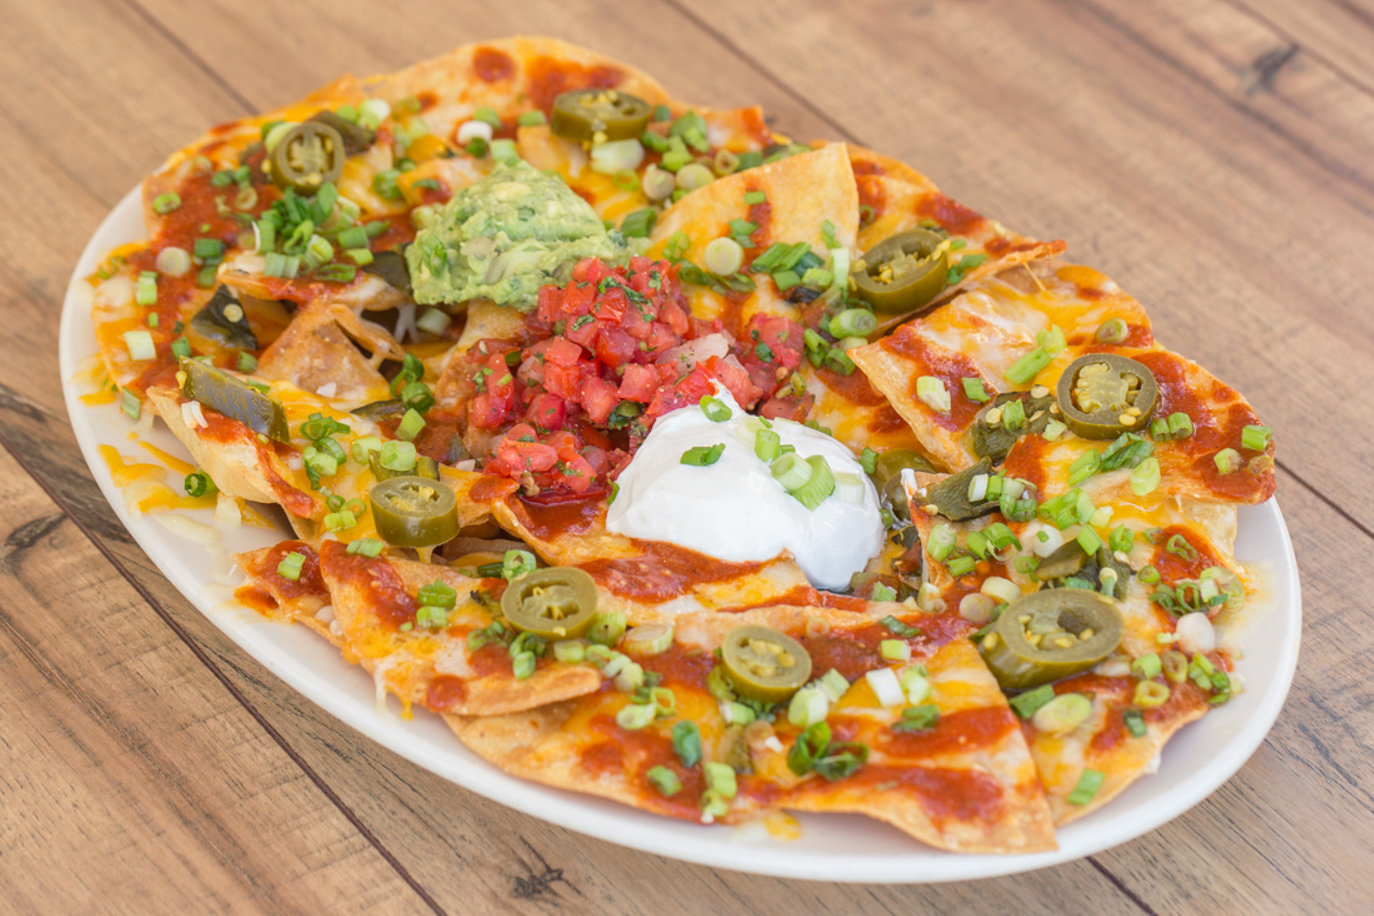 Cheesecake Factory Factory Nachos